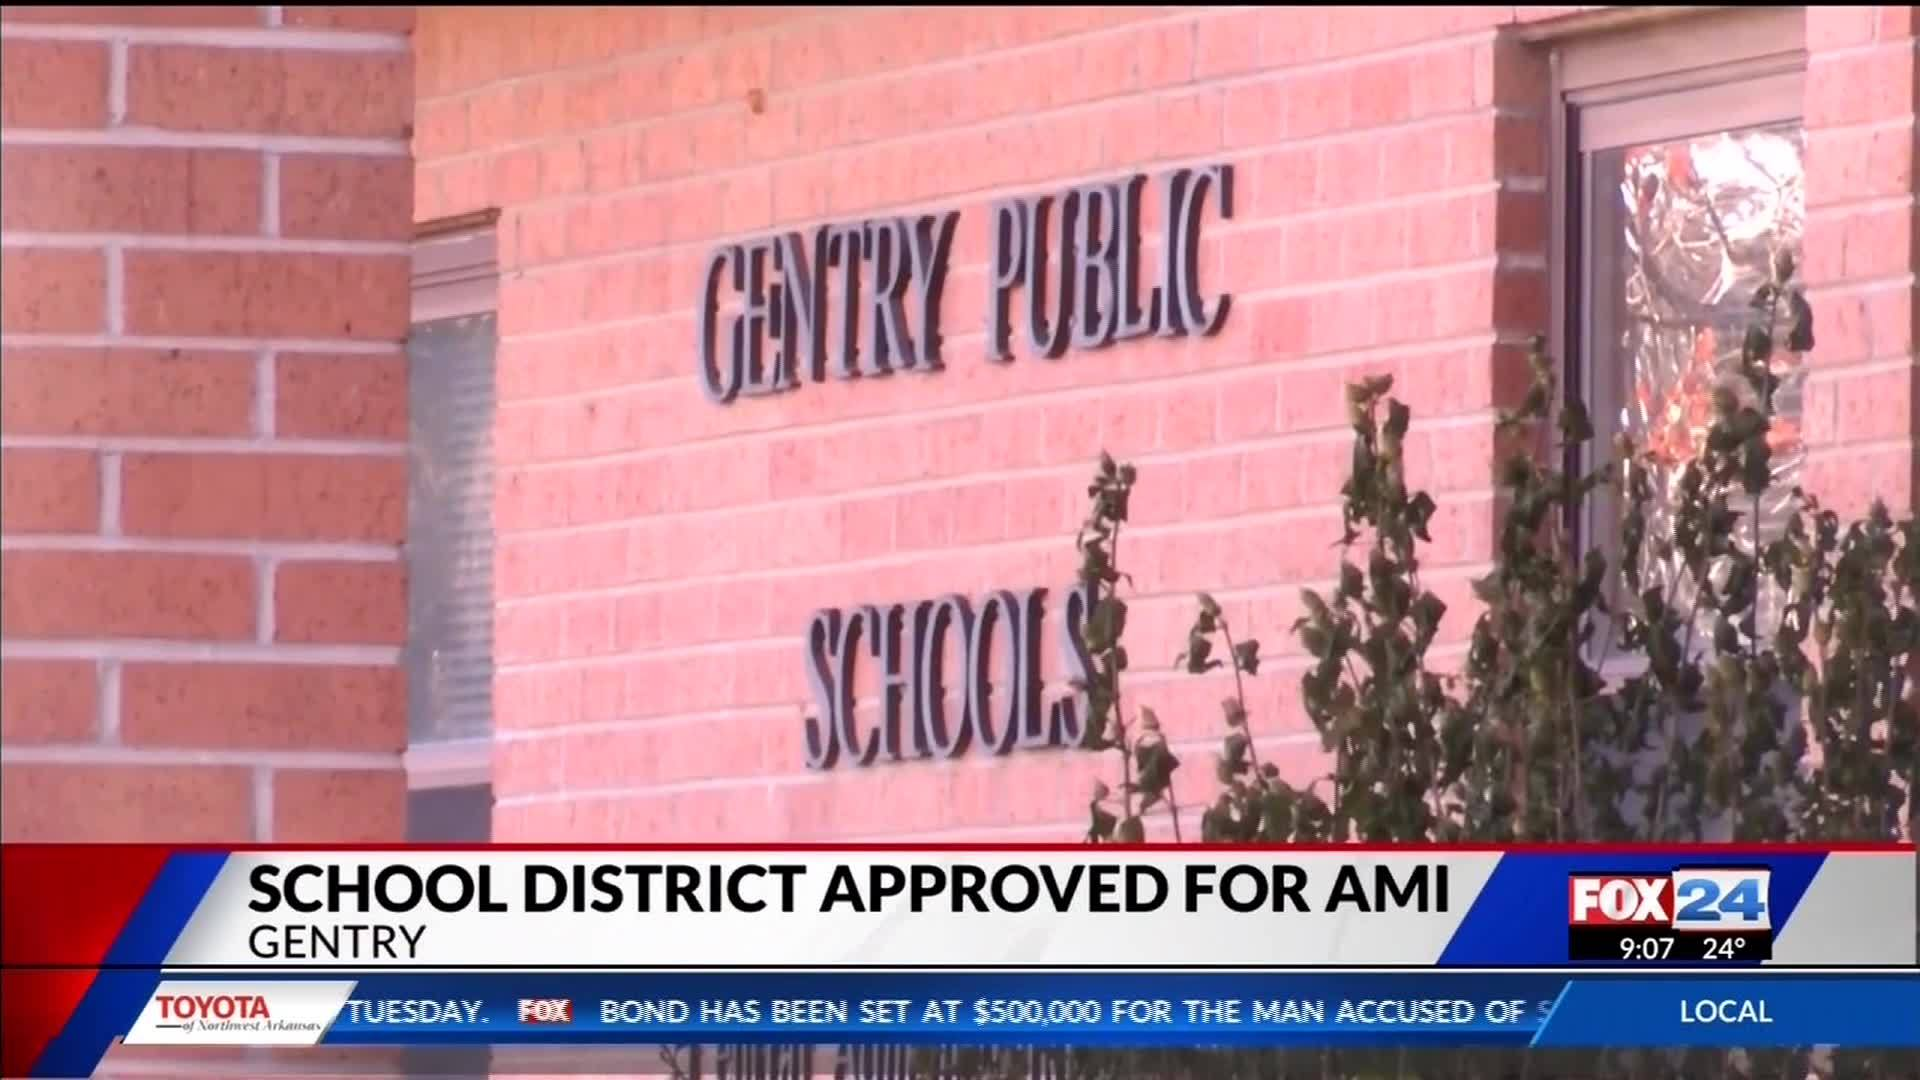 Gentry_School_District_Gets_Approval_For_6_20181114041544